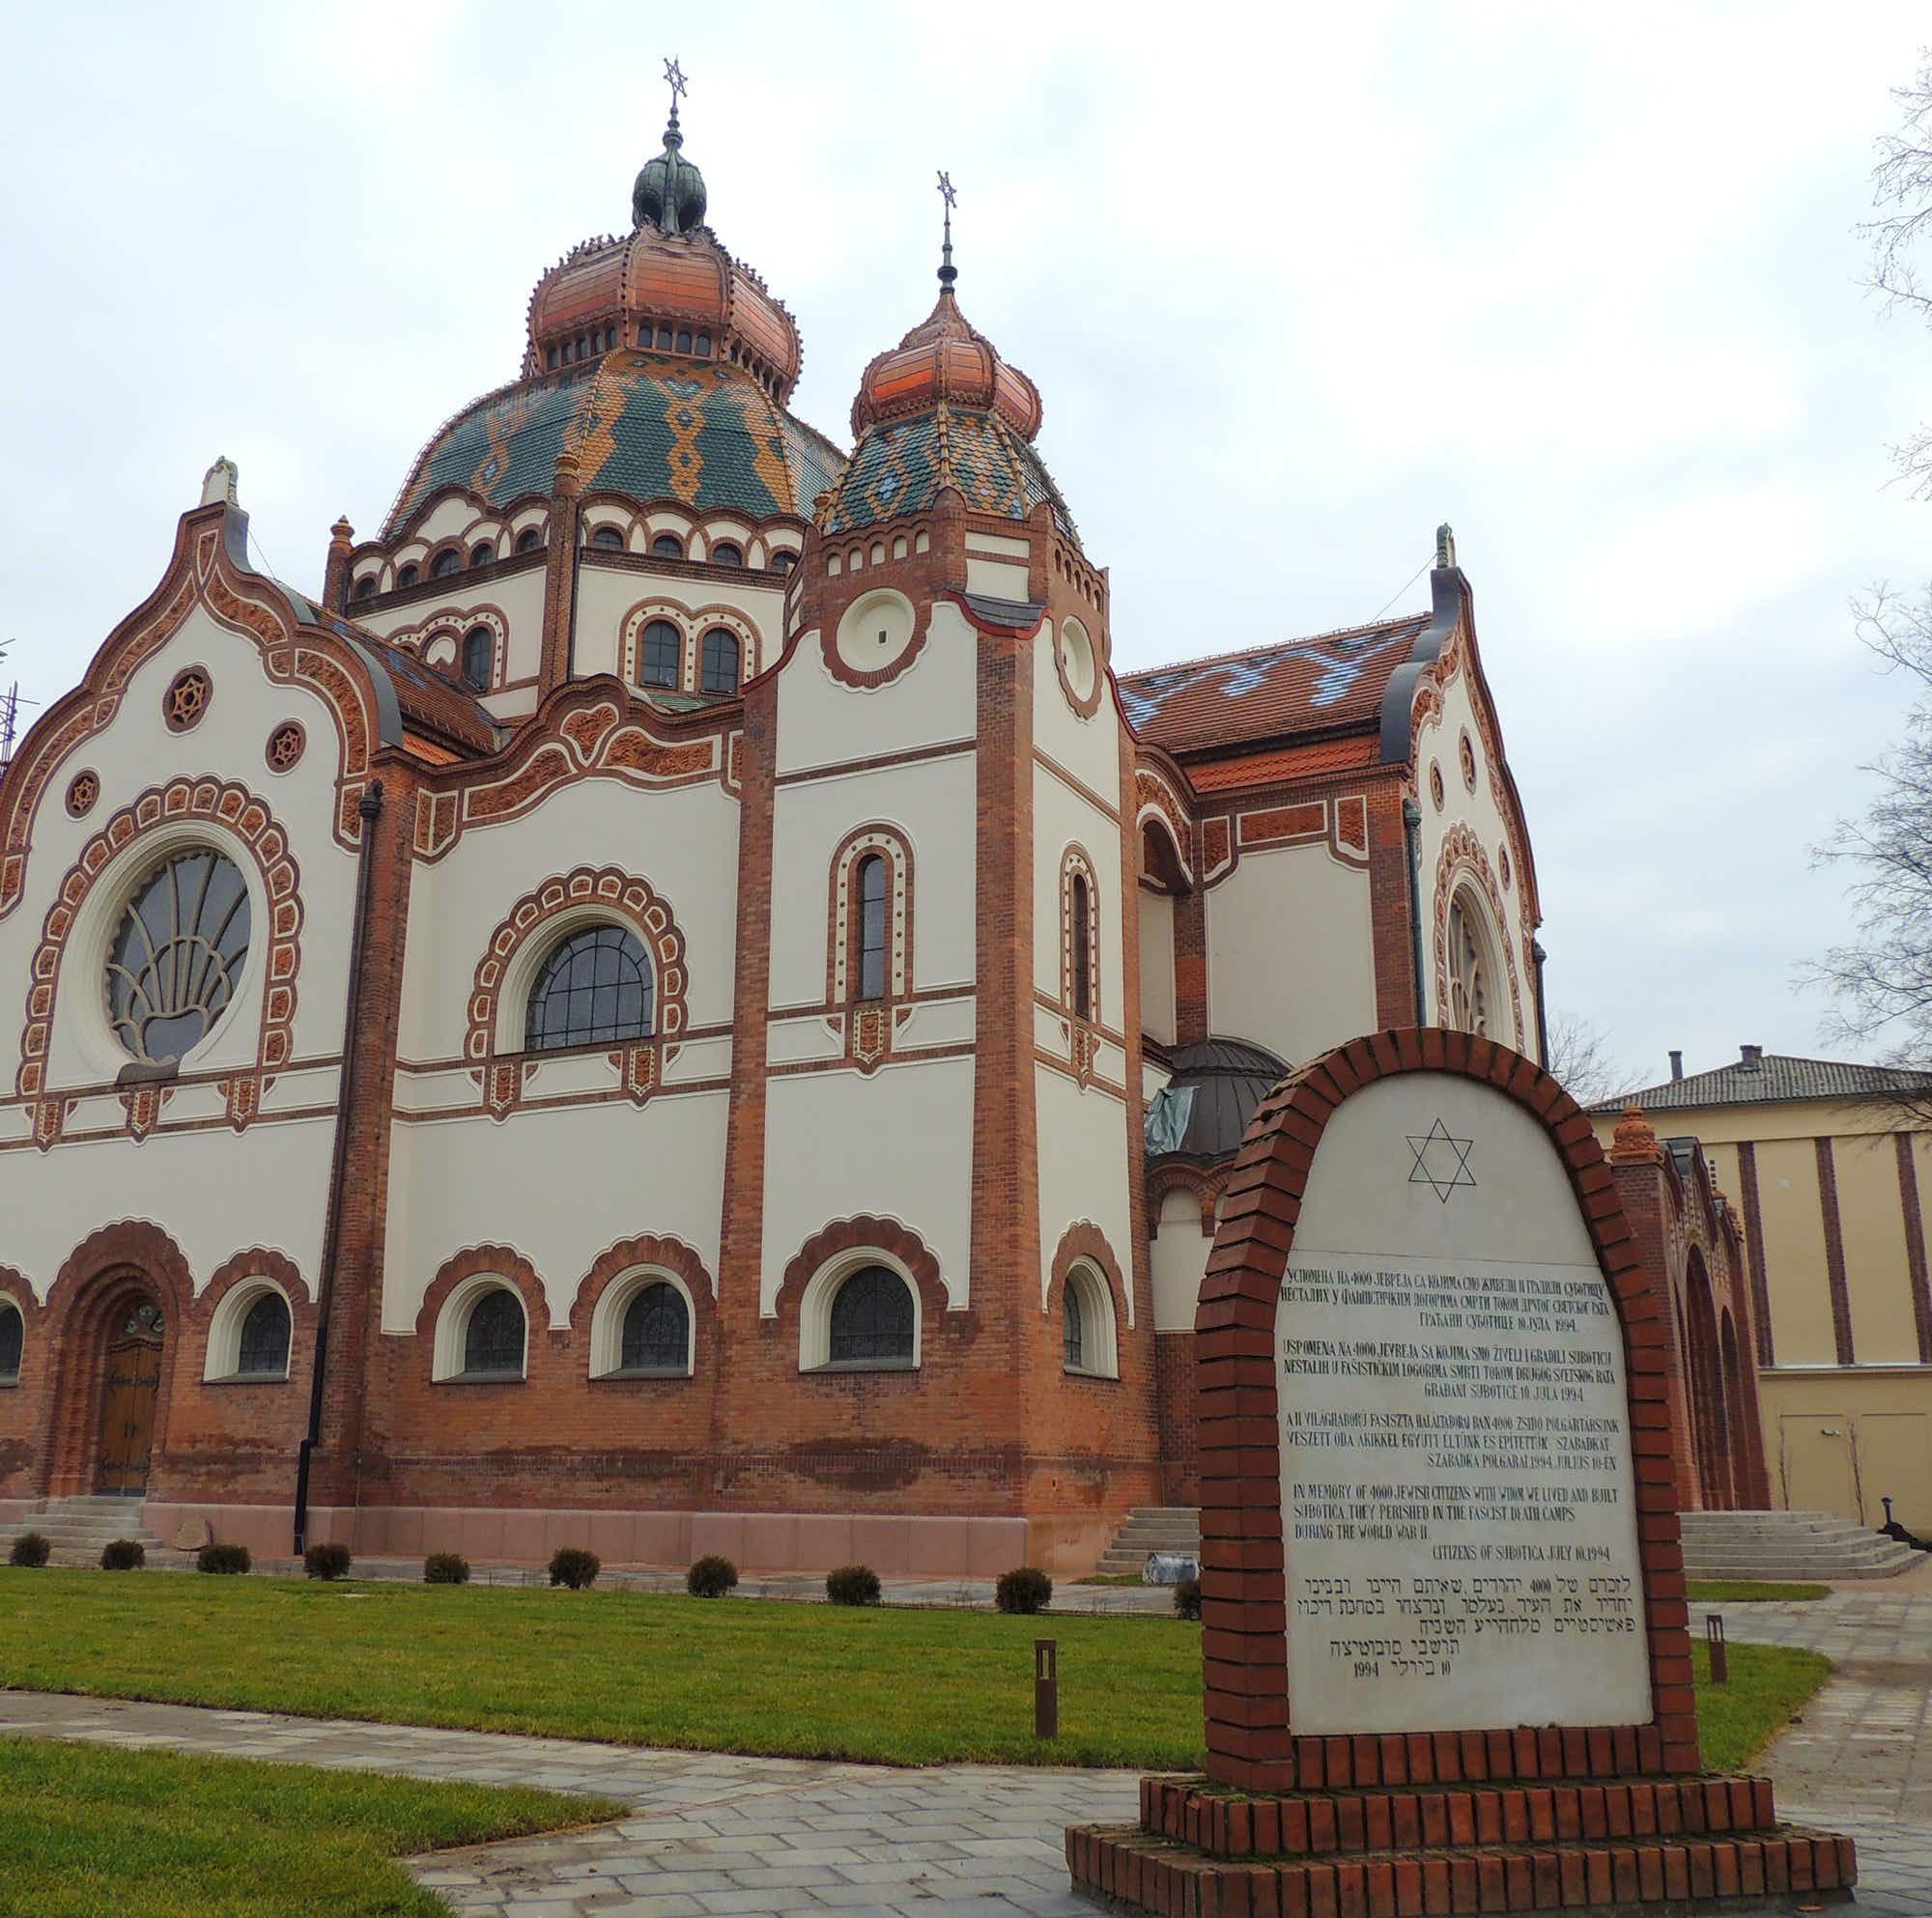 See the splendid art nouveau Subotica synagogue in Serbia restored to its full glory